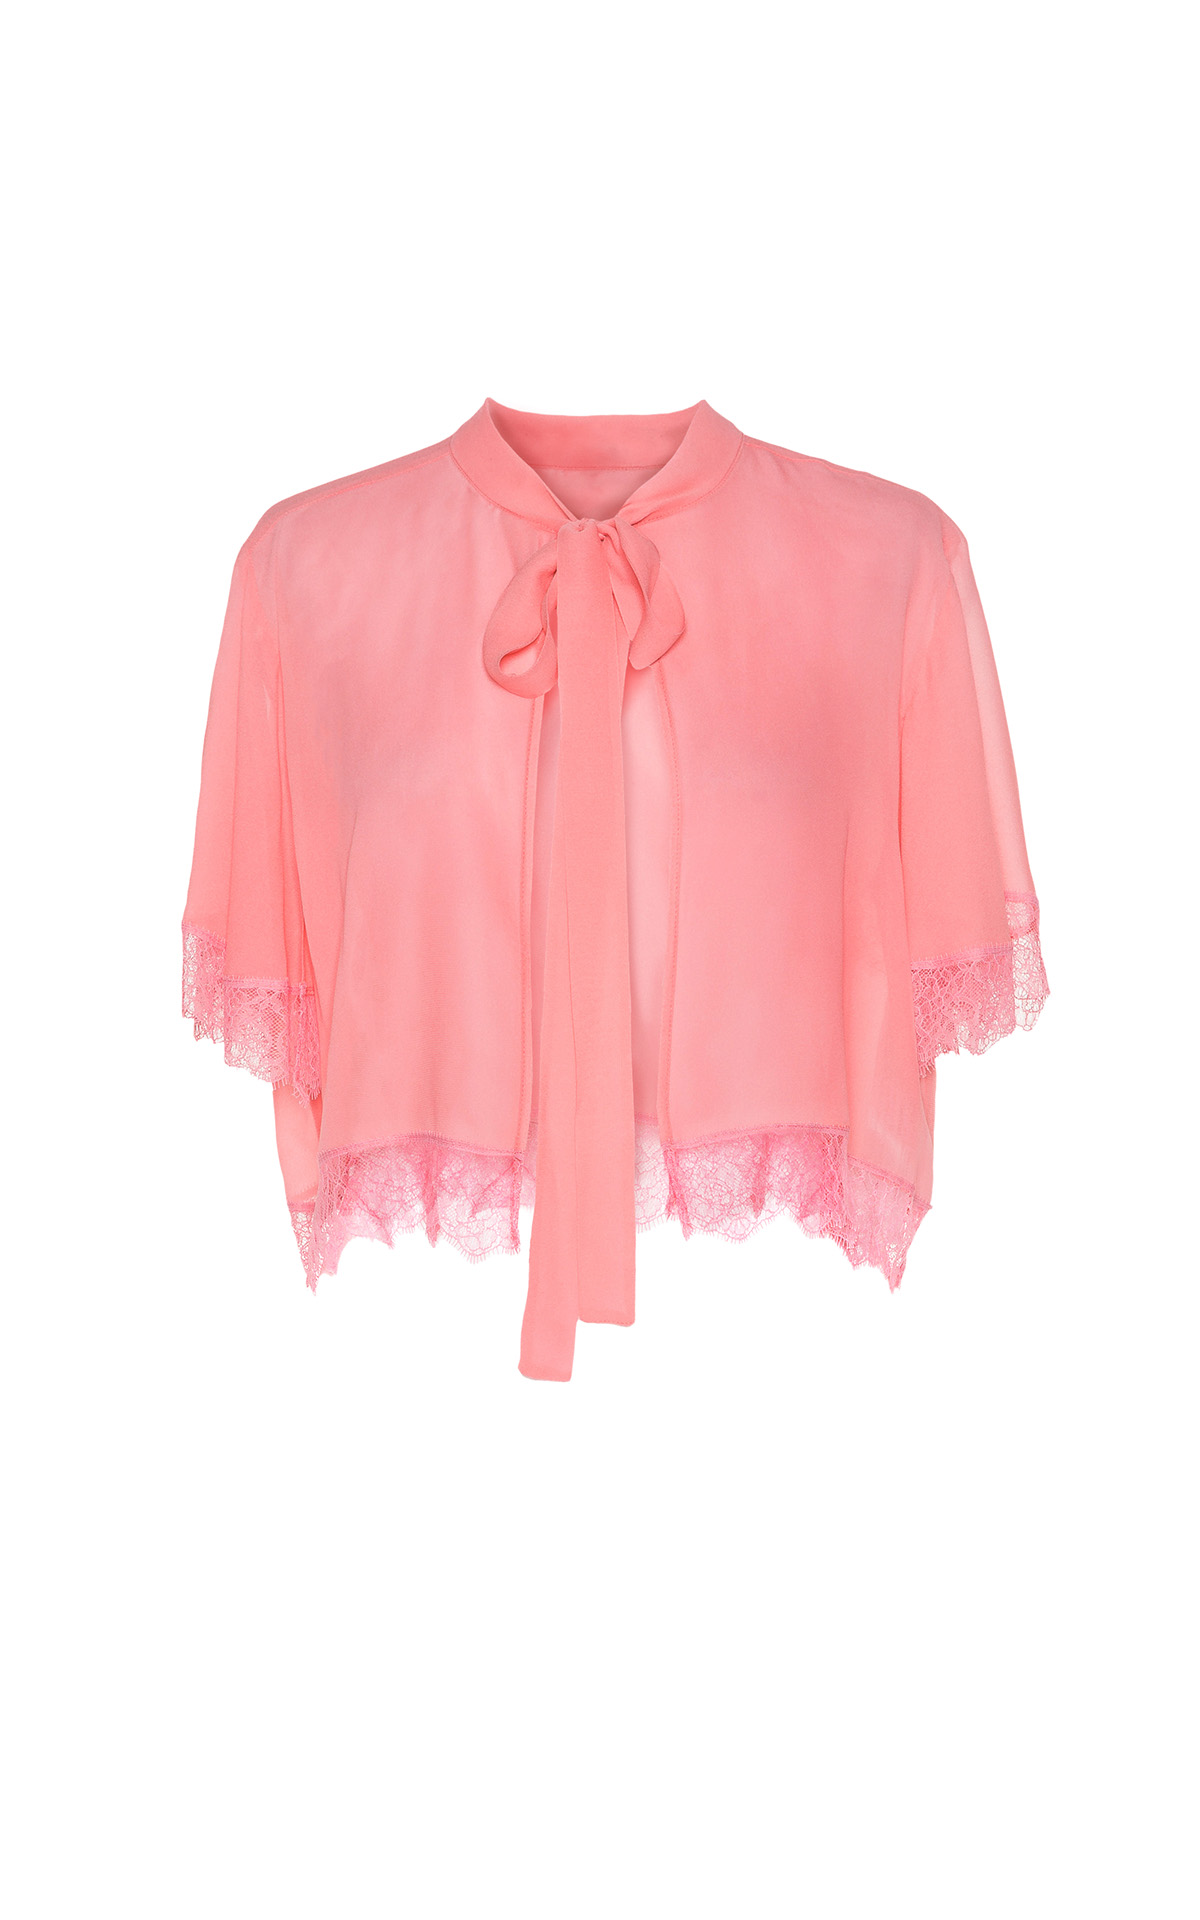 Pink lace blouse TwinSet